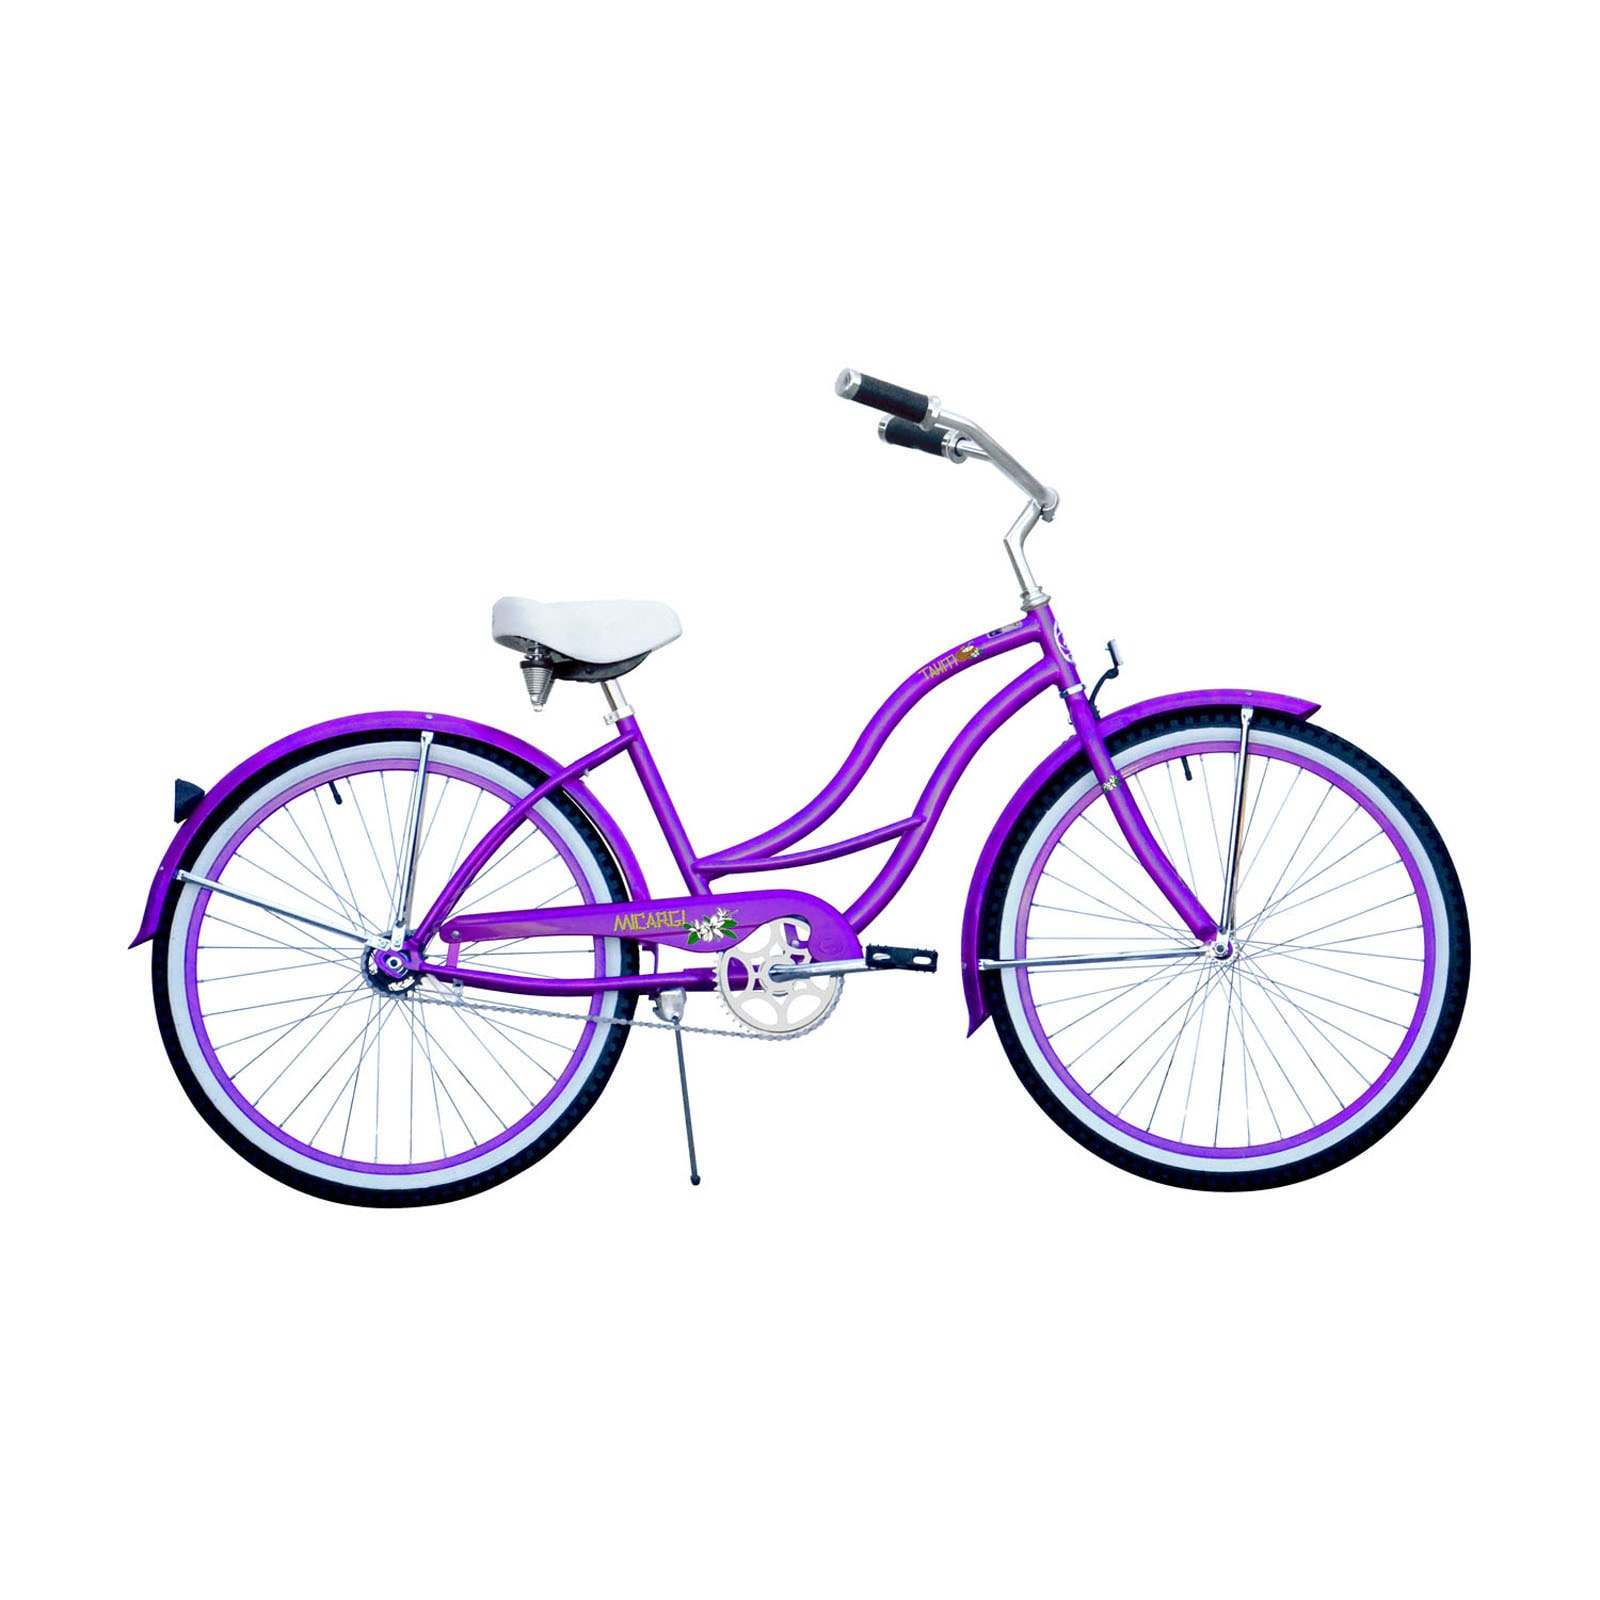 MICARGI INDUSTRIES Micargi Tahiti Women's 26-inch Purple Beach Cruiser Bike